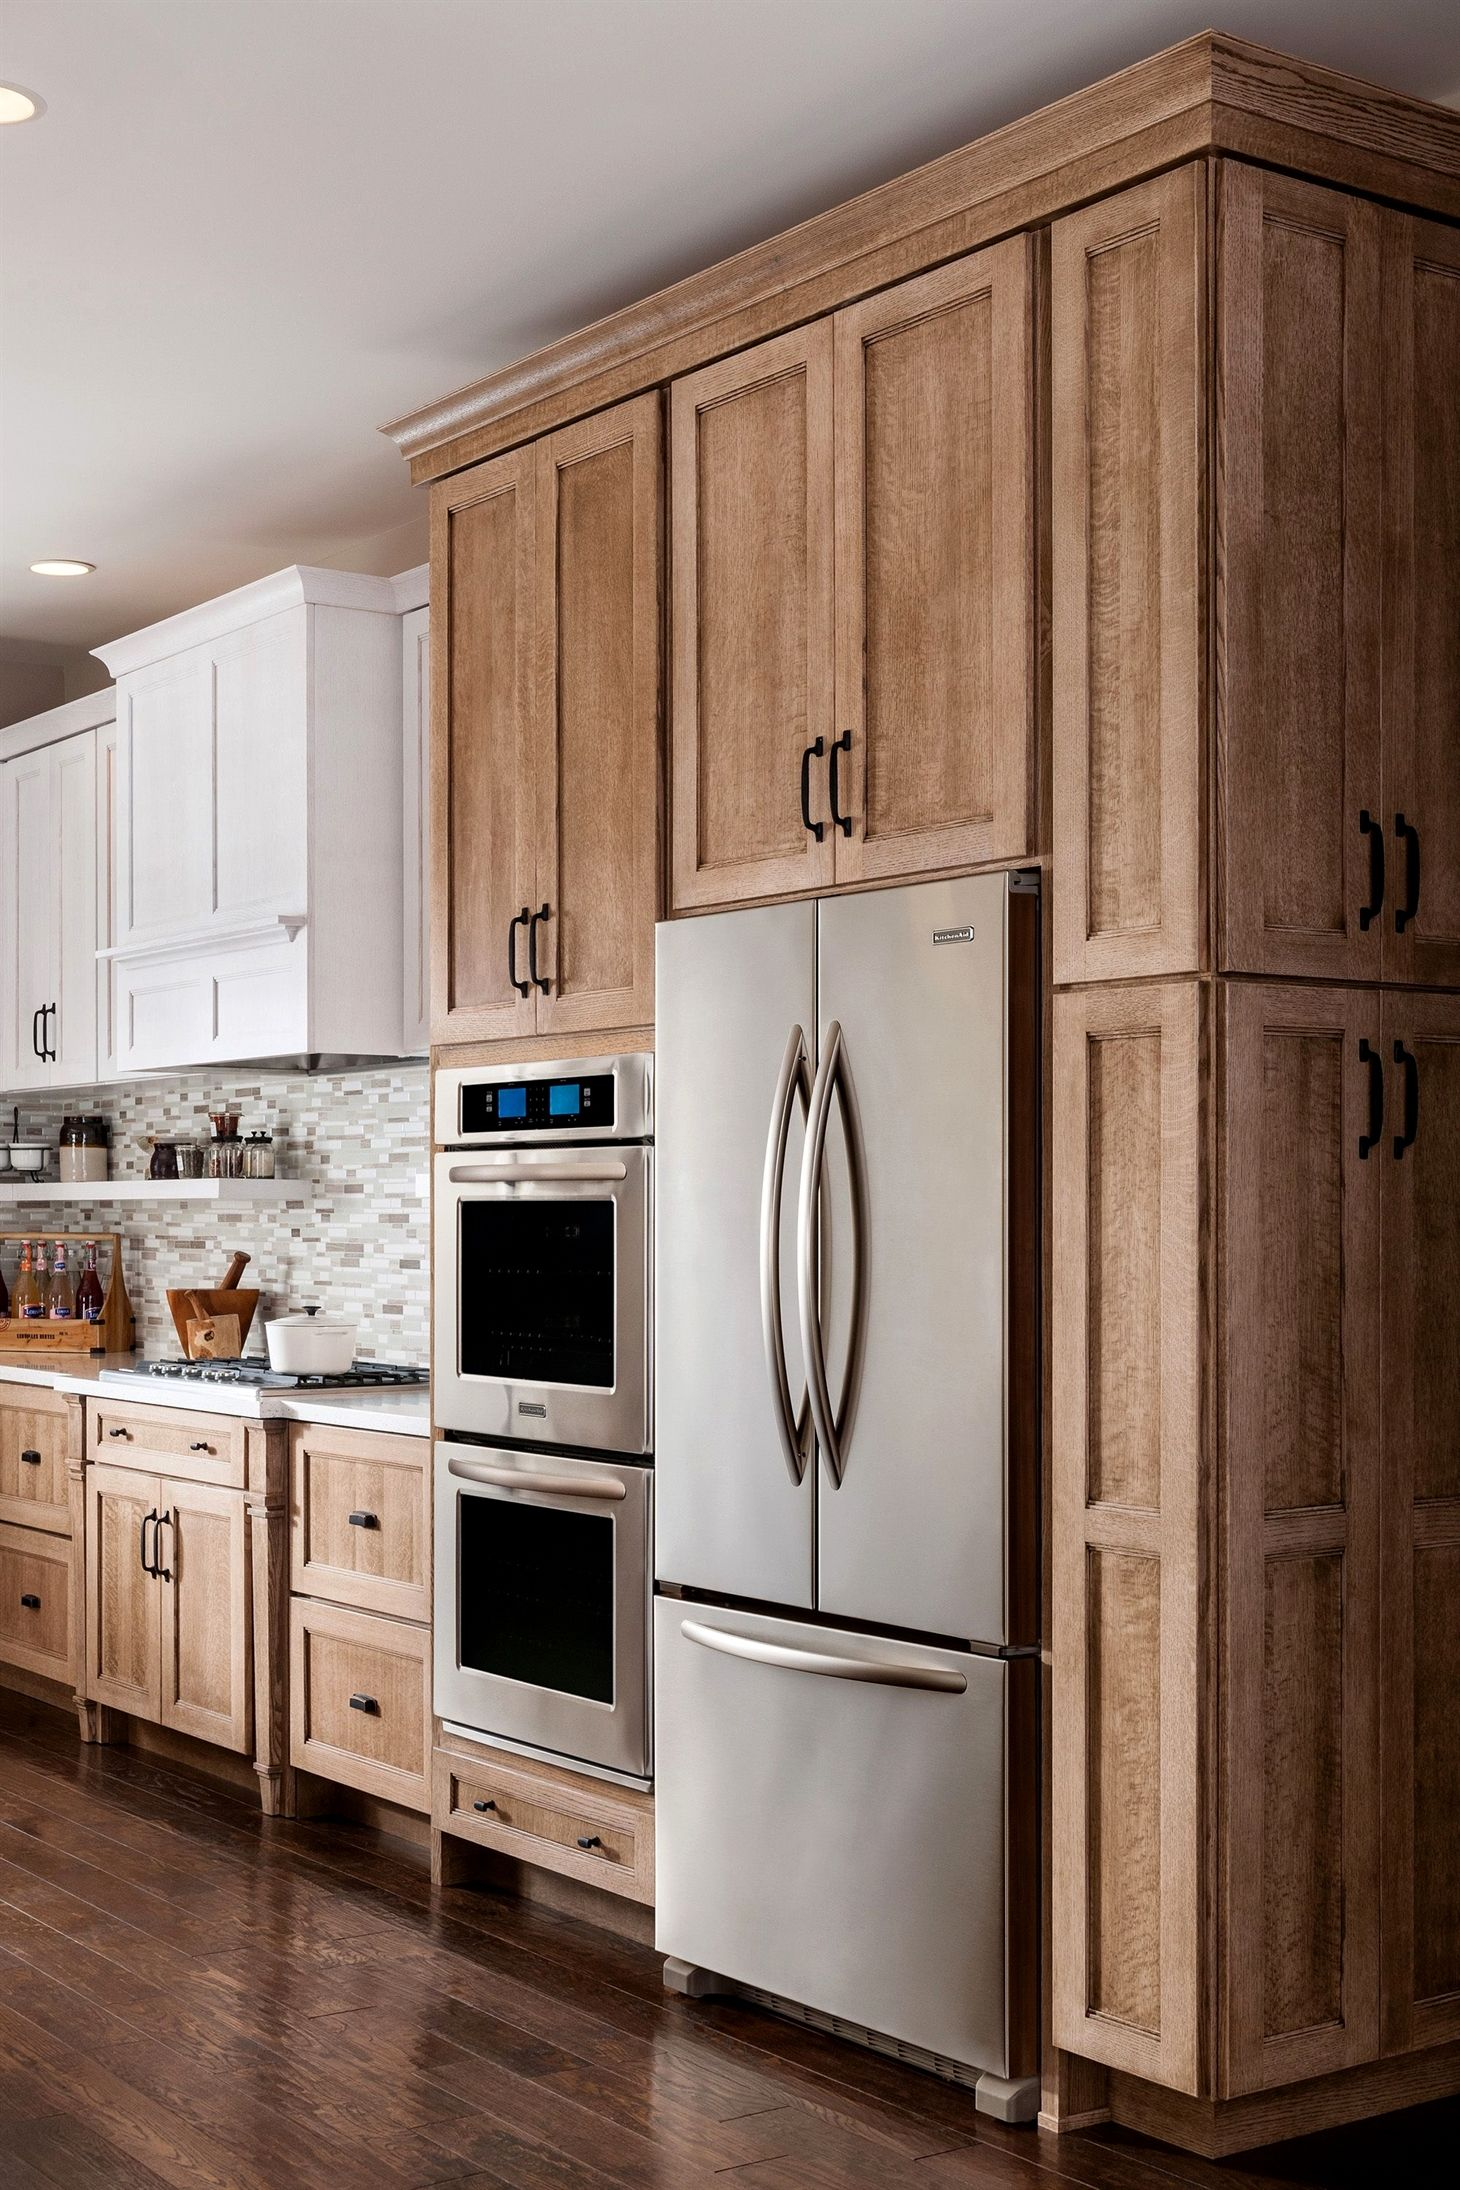 Selection For A Modern And Refined Kitchen Brown Kitchen Cabinets Dream Kitchen Cabinets Kitchen Cabinet Design